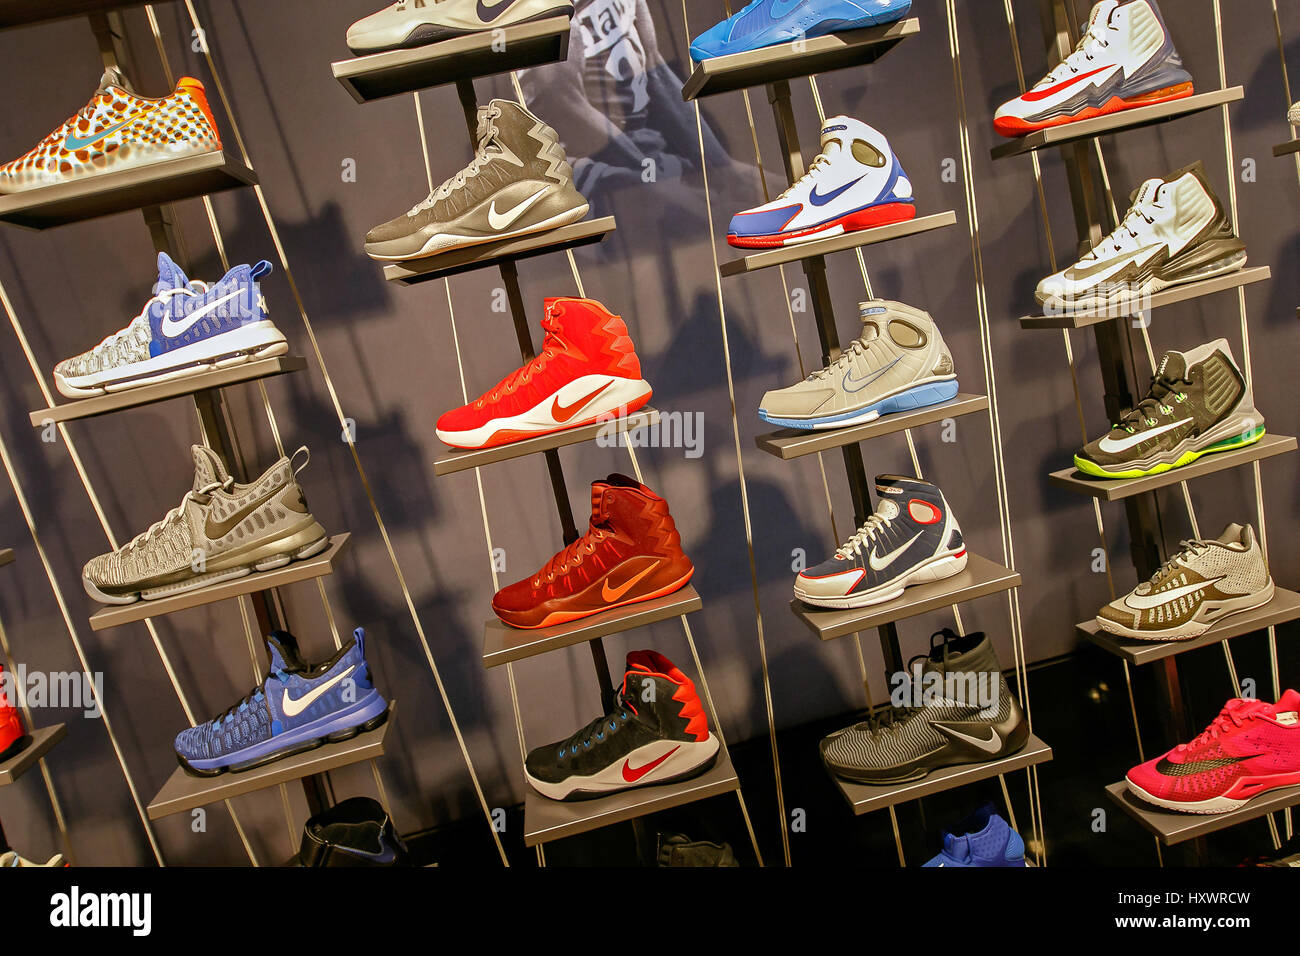 premium selection 0c139 3ce3a Assorted Nike basketball shoes for sale in the NBA store in Manhattan. -  Stock Image